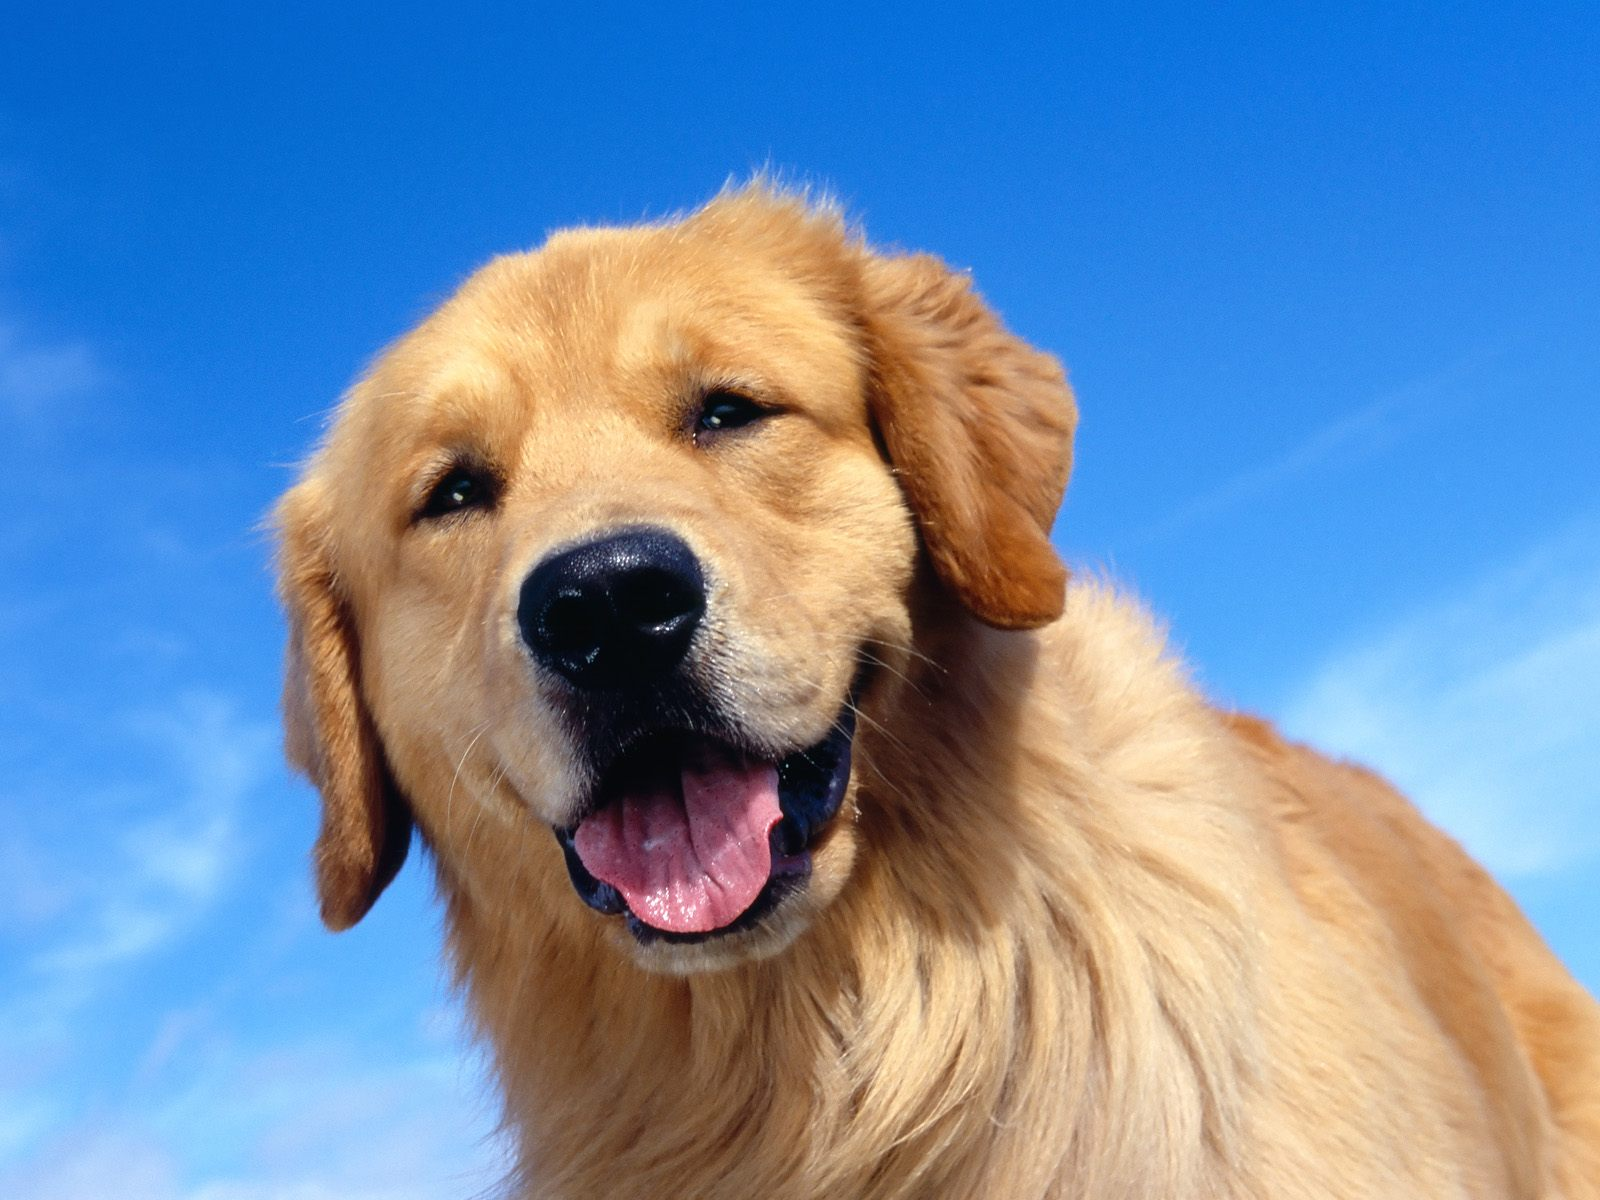 fantastica animal the golden retiever happy thursday images with dogs